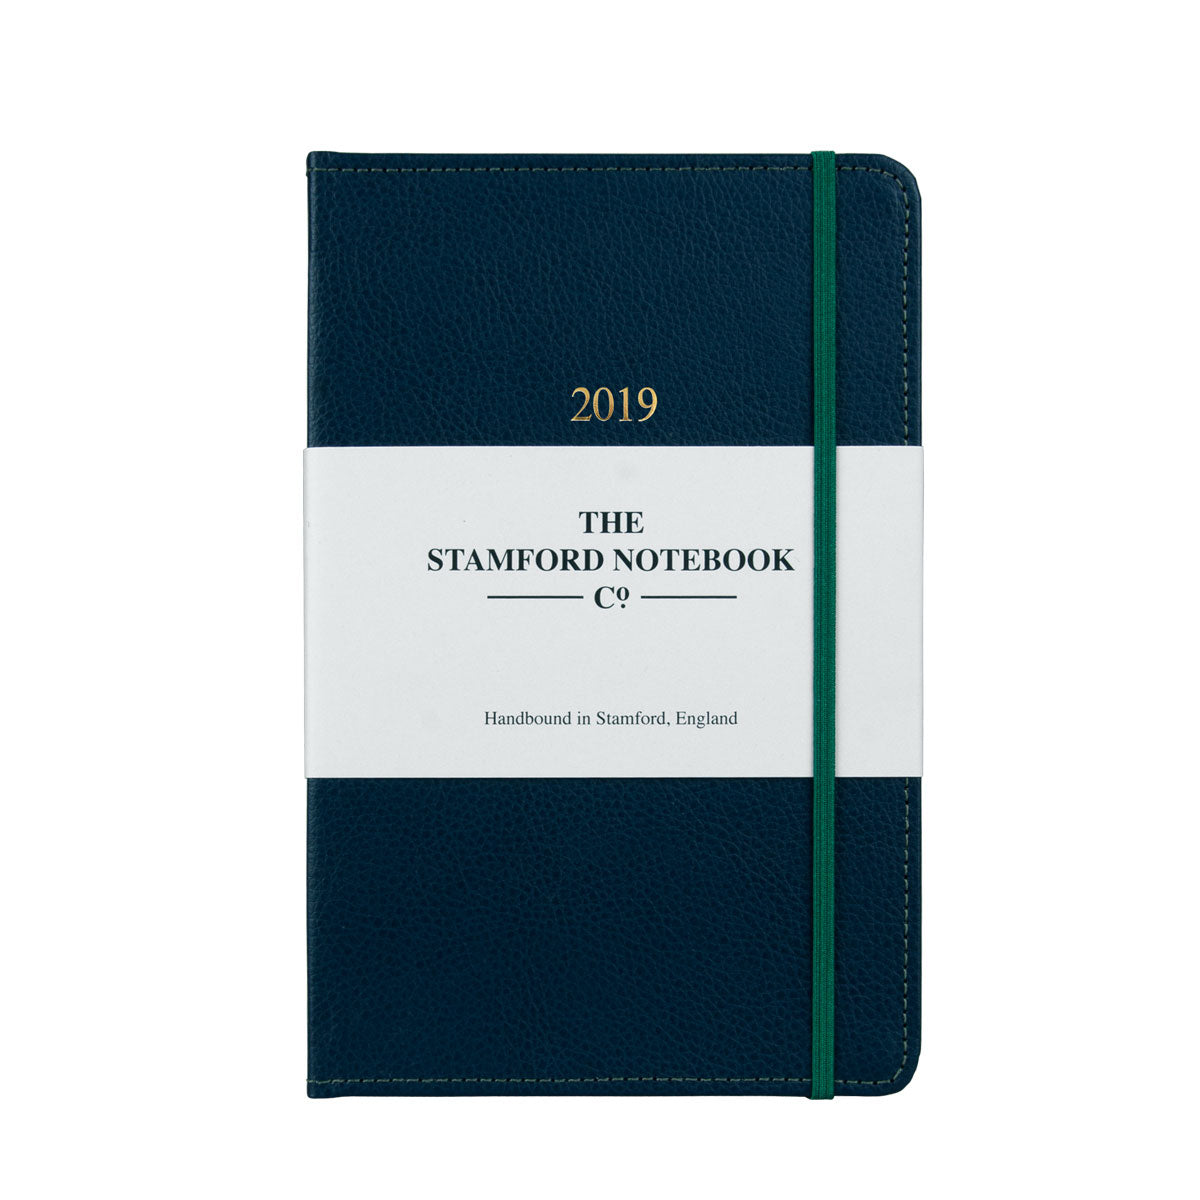 Marine Blue leather diary with green stitching